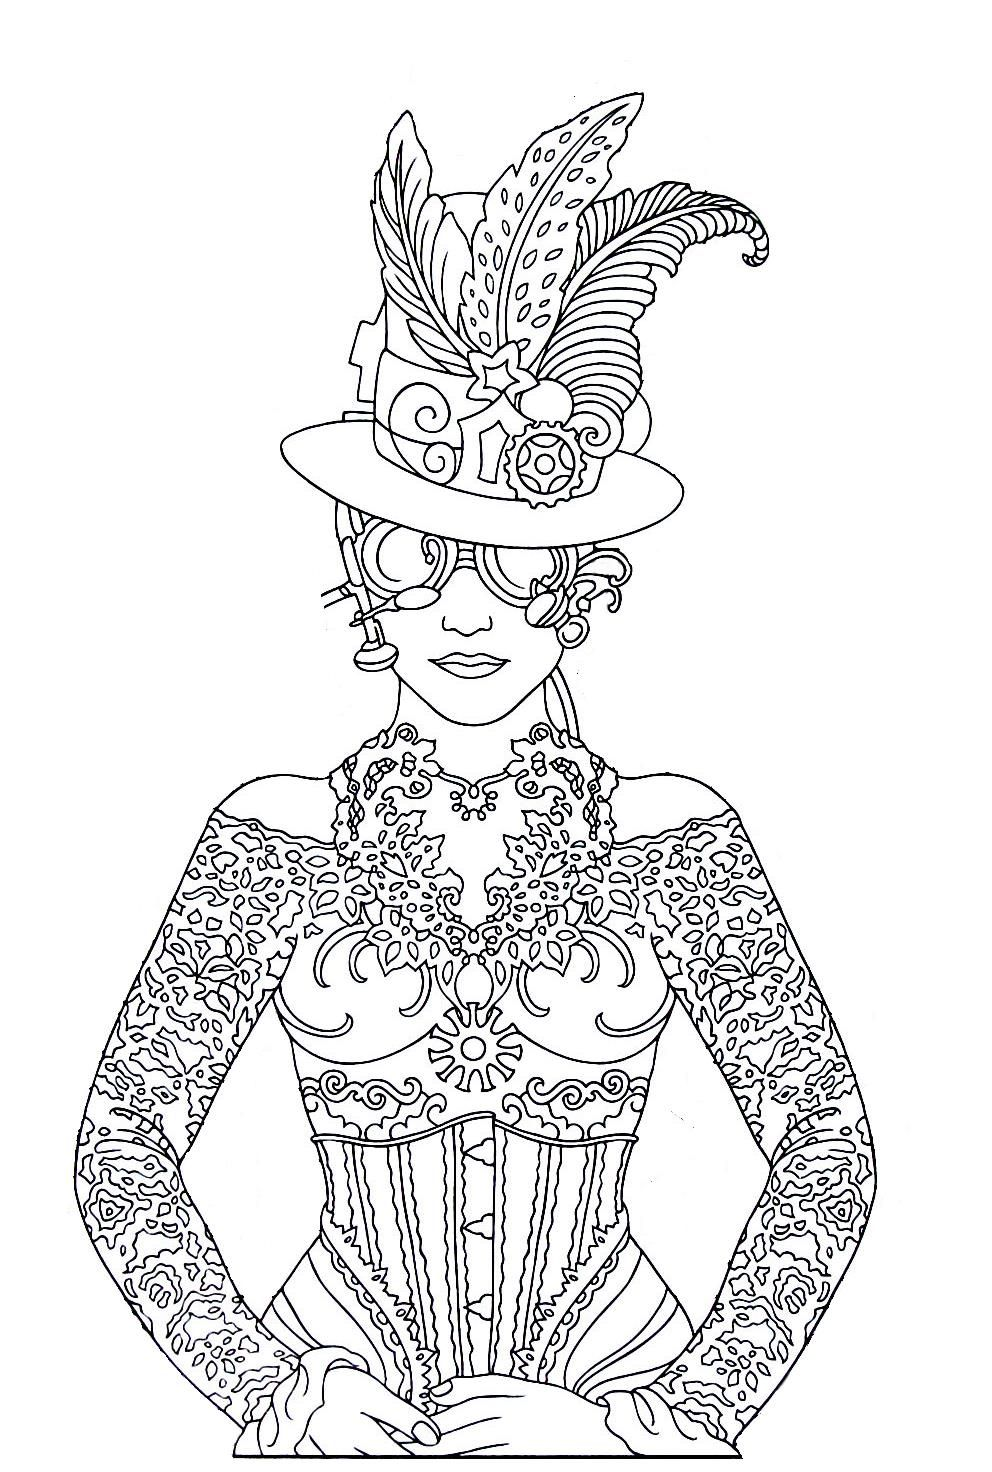 medium coloring pages - photo#36